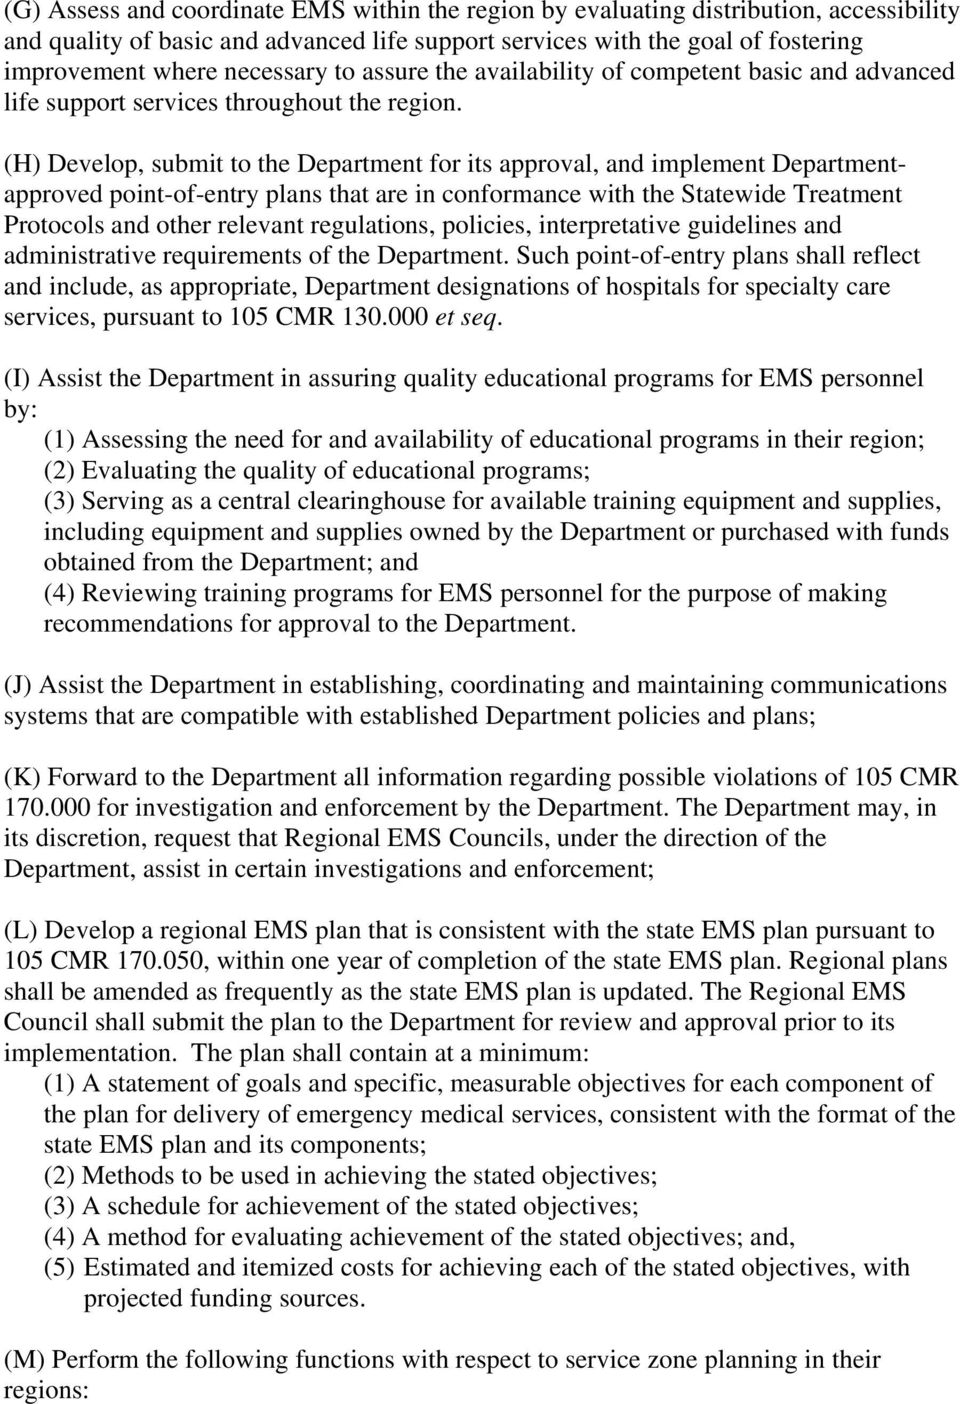 (H) Develop, submit to the Department for its approval, and implement Departmentapproved point-of-entry plans that are in conformance with the Statewide Treatment Protocols and other relevant